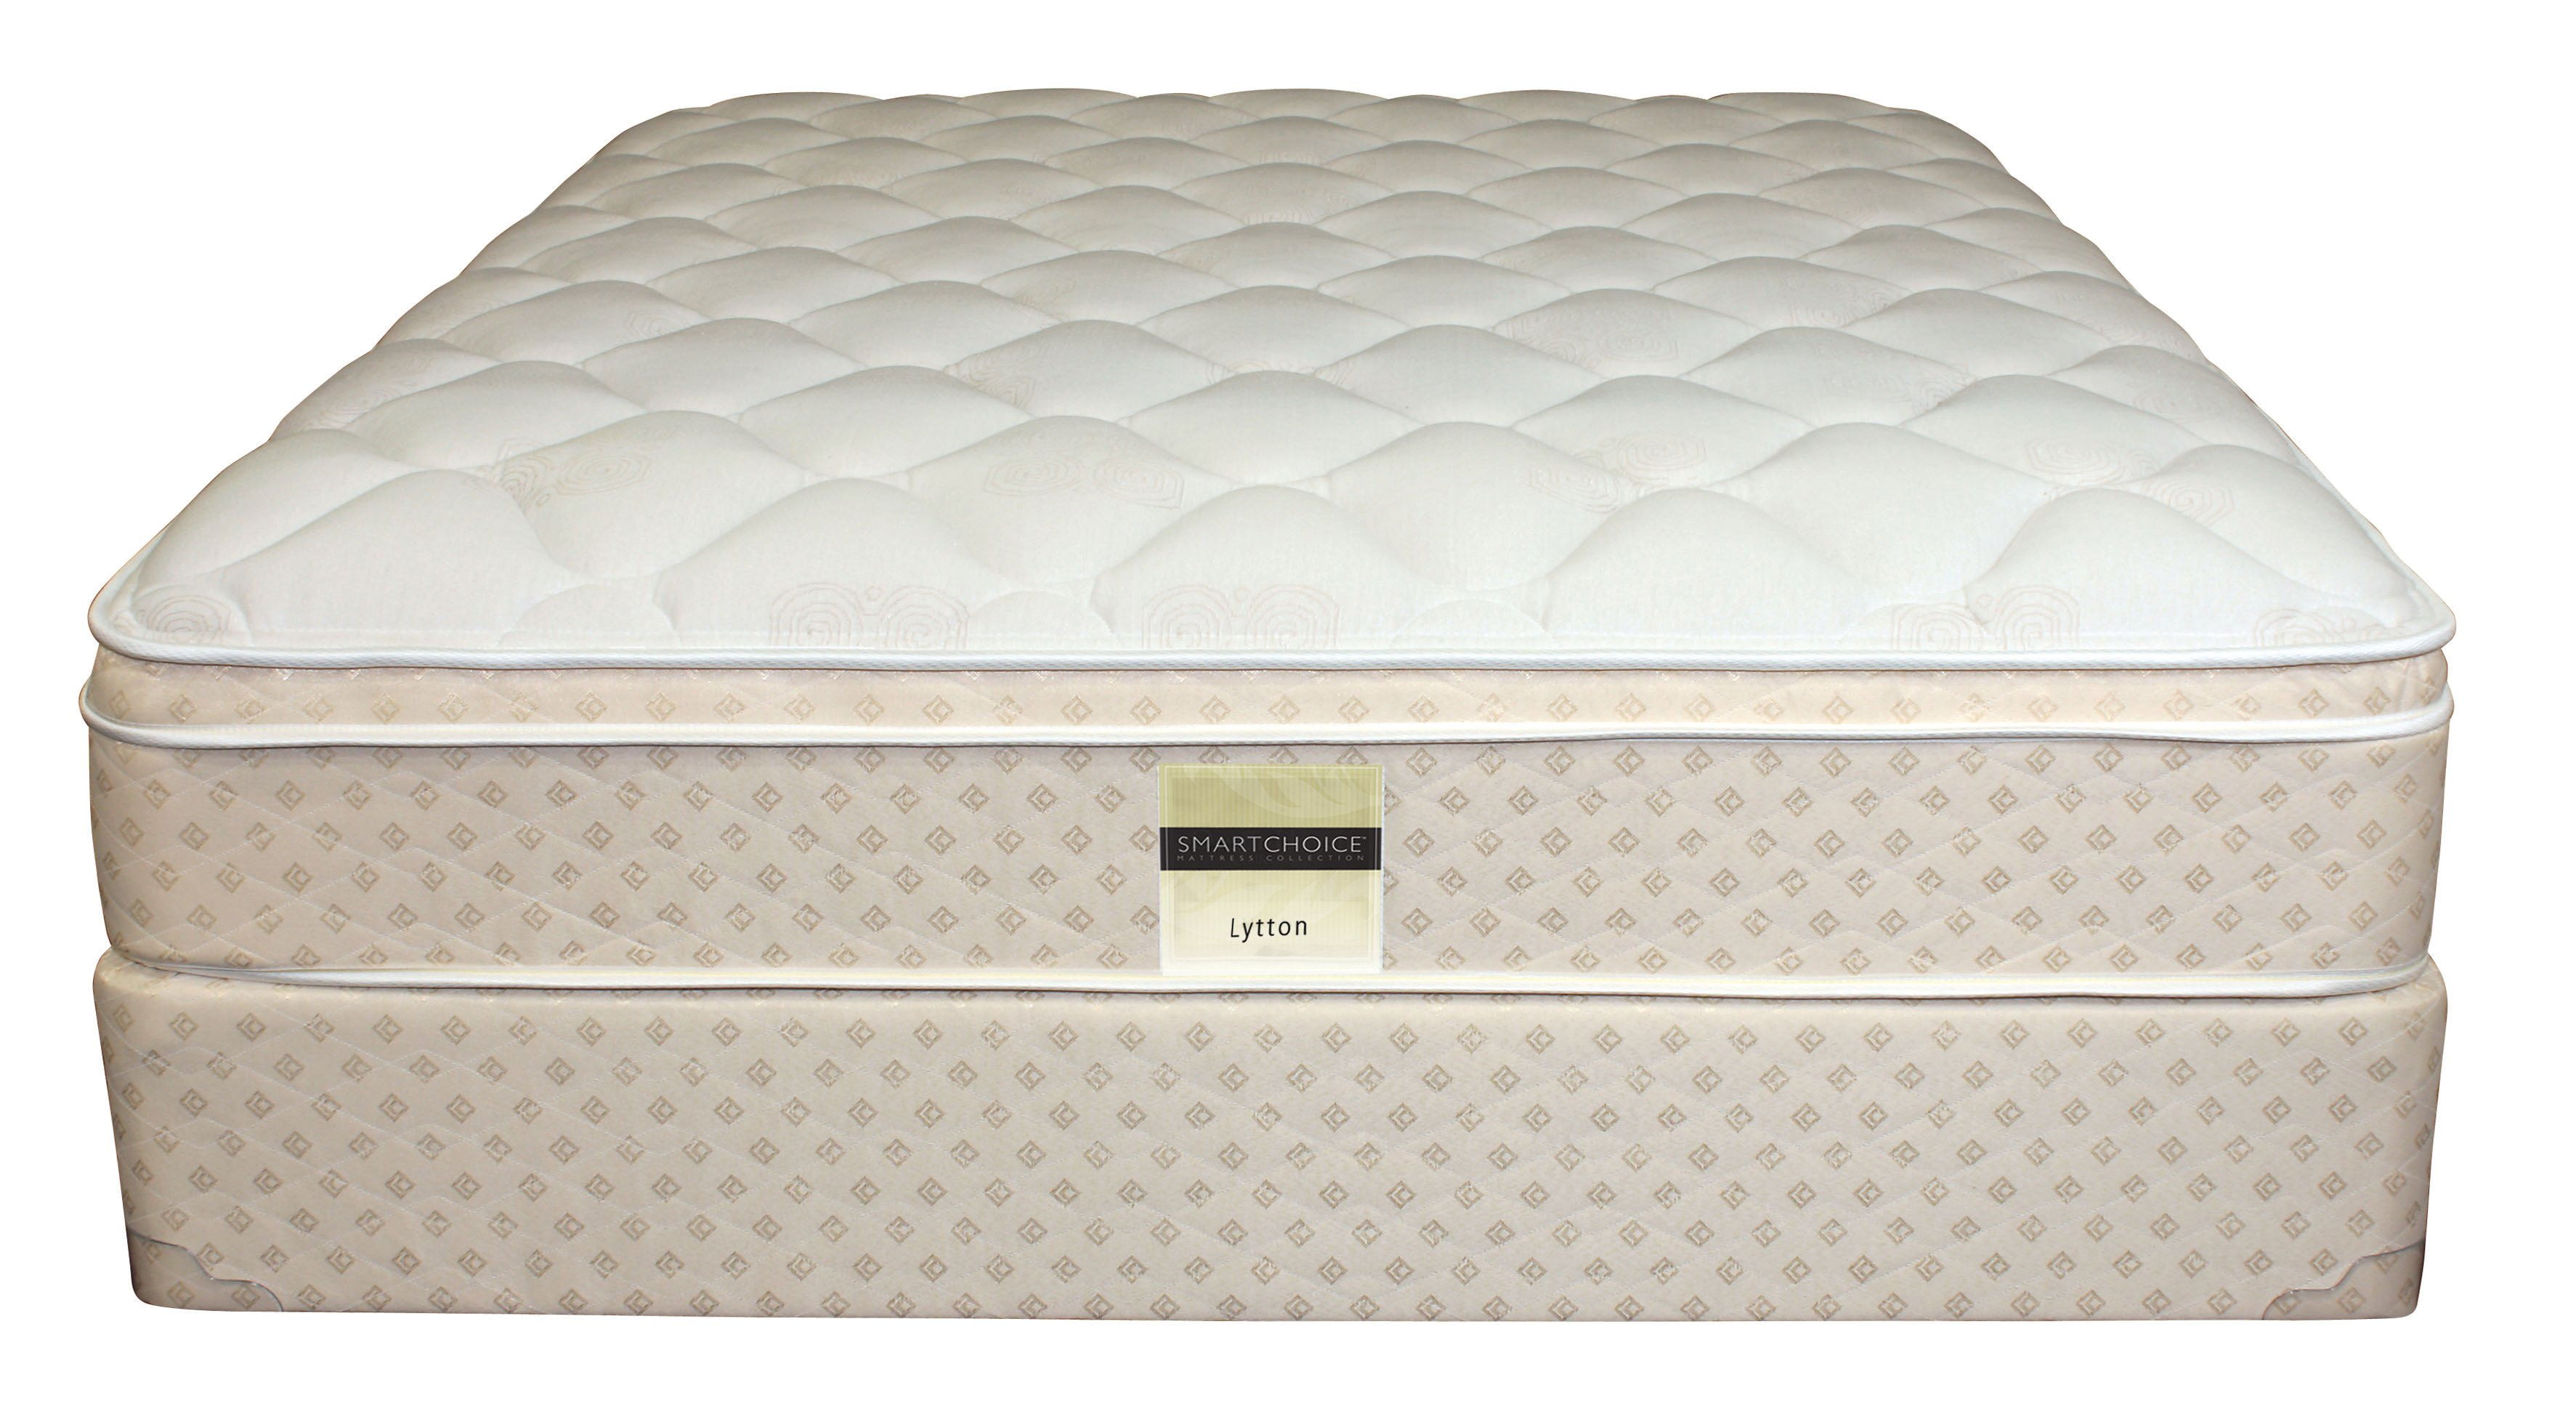 Who Sells Sleep Channel By Sleeplace 13 Inch Galaxy Euro Box Hybrid Cool I-gel Memory Foam And Pocketed Innerspring Bed... The Cheapest